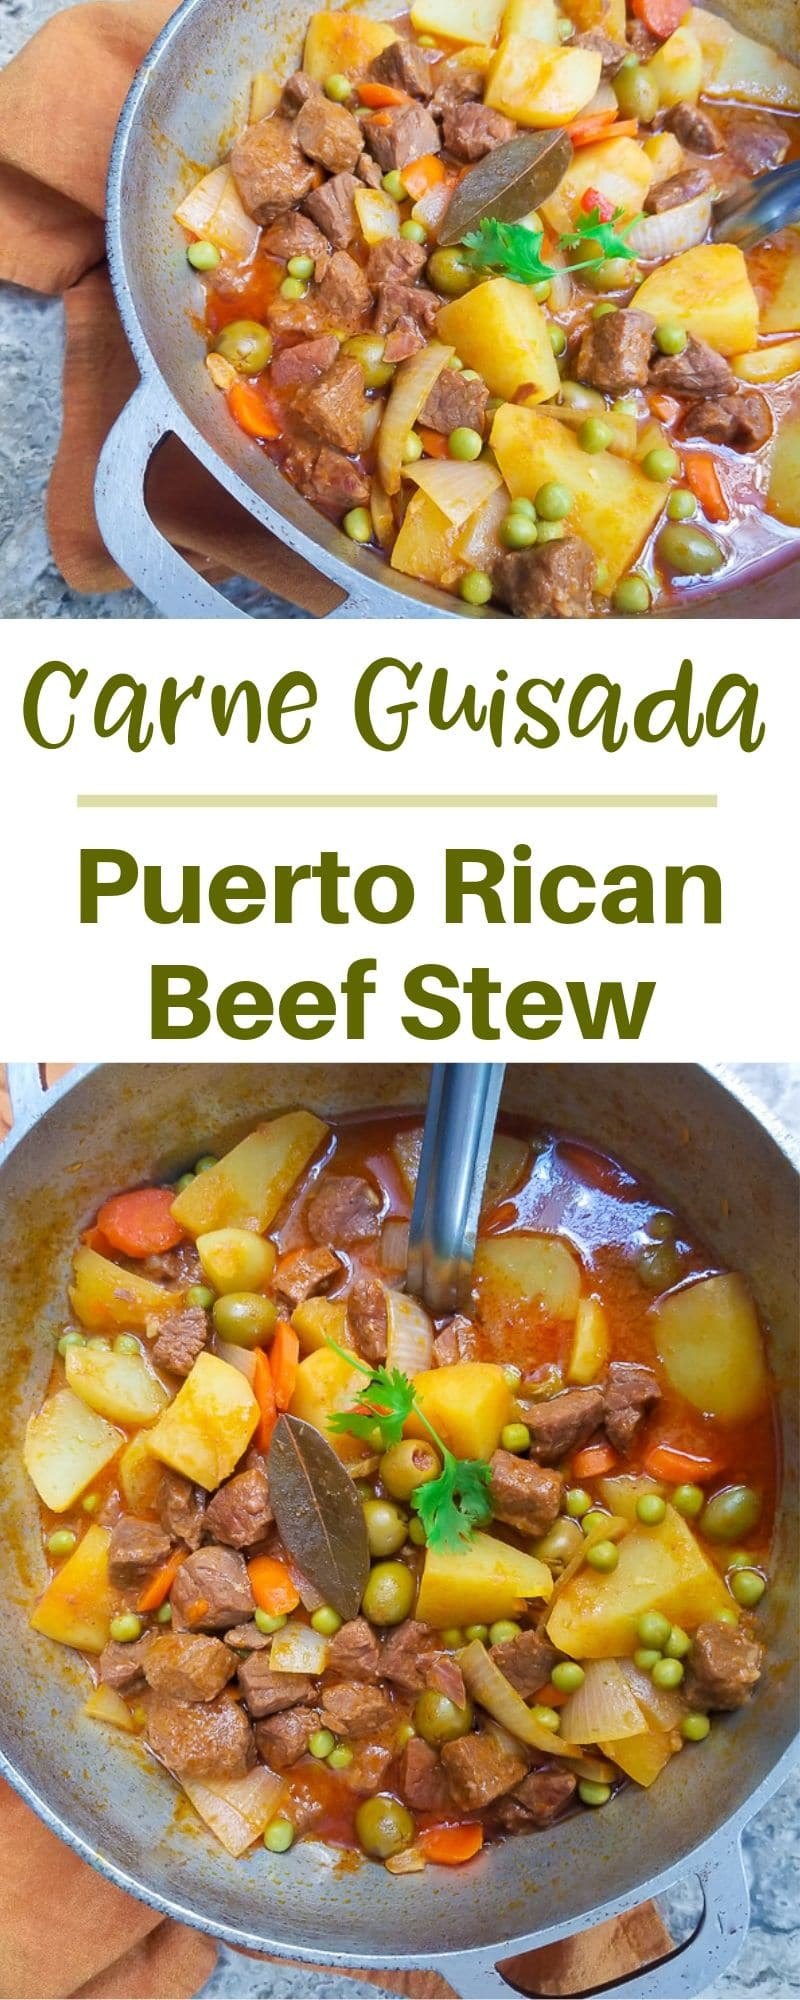 This Carne Guisada (Puerto Rican Beef Stew) recipe is filled with delicious chunks of beef, carrots, onions, potatoes, olives and plenty of Puerto Rican spices.  Comforting and filling traditional Puerto Rican Beef Stew. #mexicanappetizersandmore #carneguisada #puertoricanbeefstew #puertoricandishes #puertoricanrecipes #puertoricanstews #beefstew